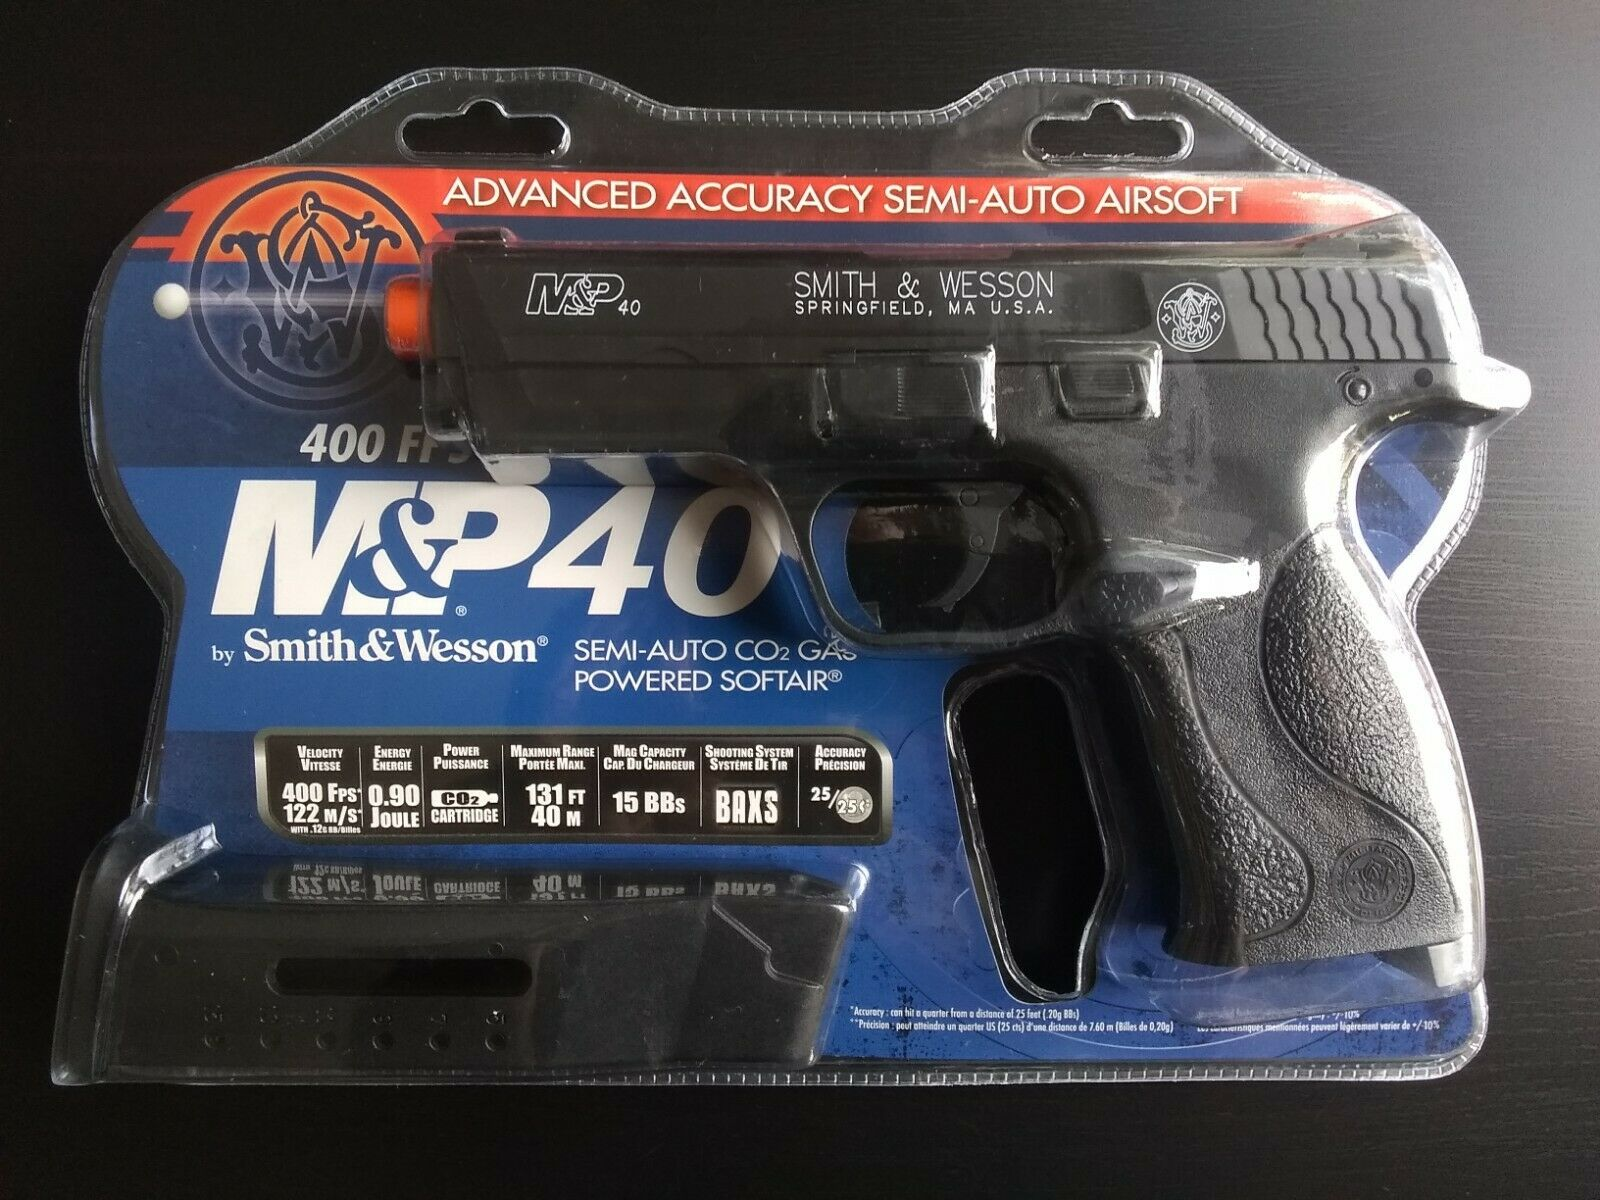 Smith & Wesson M&P 40 CO2 Airsoft Pistol 400 FPS Metal Barrel BAXS Non-Blowback